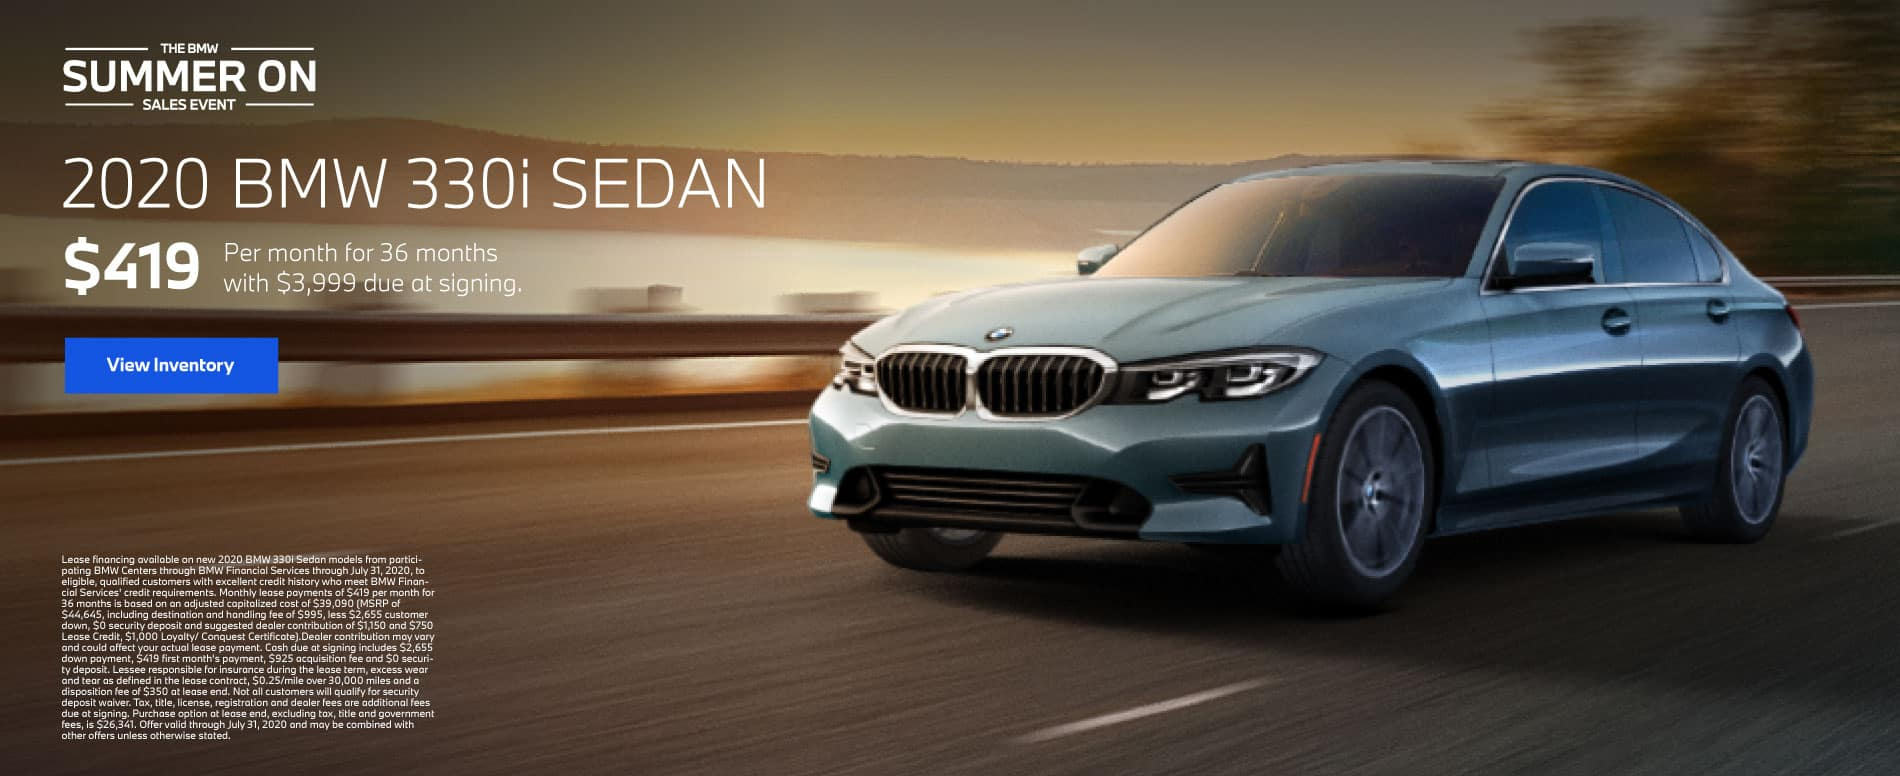 2020 BMW 330i Sedan $419 a month for 36 months | View Inventory